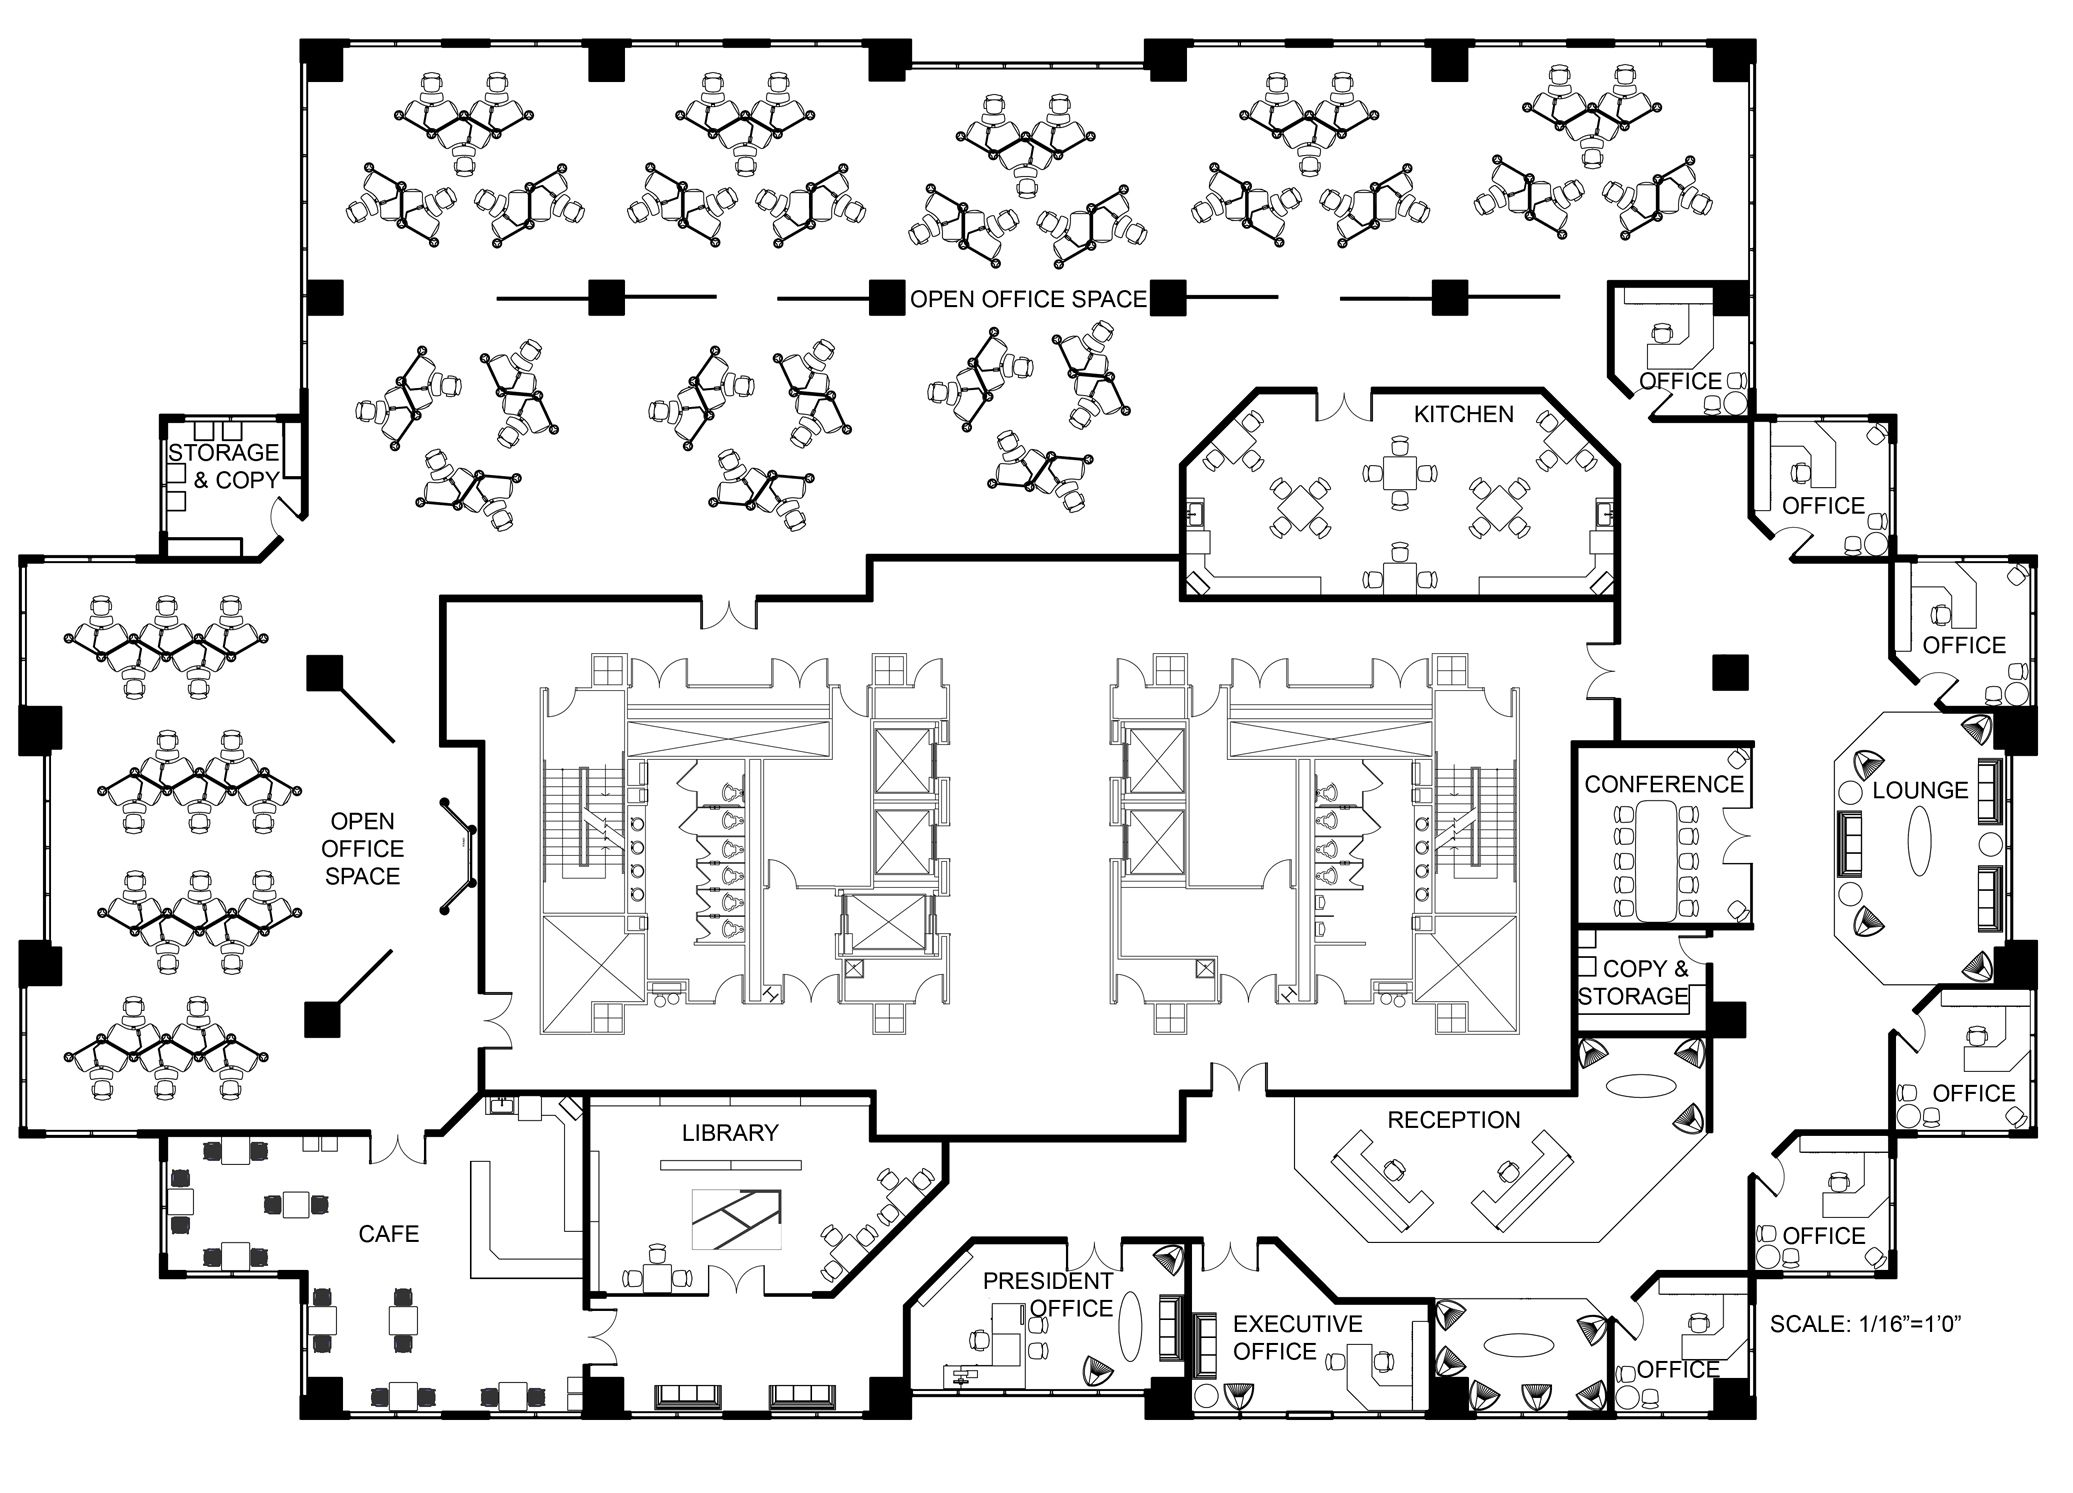 open office floor plans. original 314577 CP4J5cCkLLdr5Ey51s1HeXVab jpg  2073 1493 floor plans Pinterest Architecture plan Corporate offices and Office designs